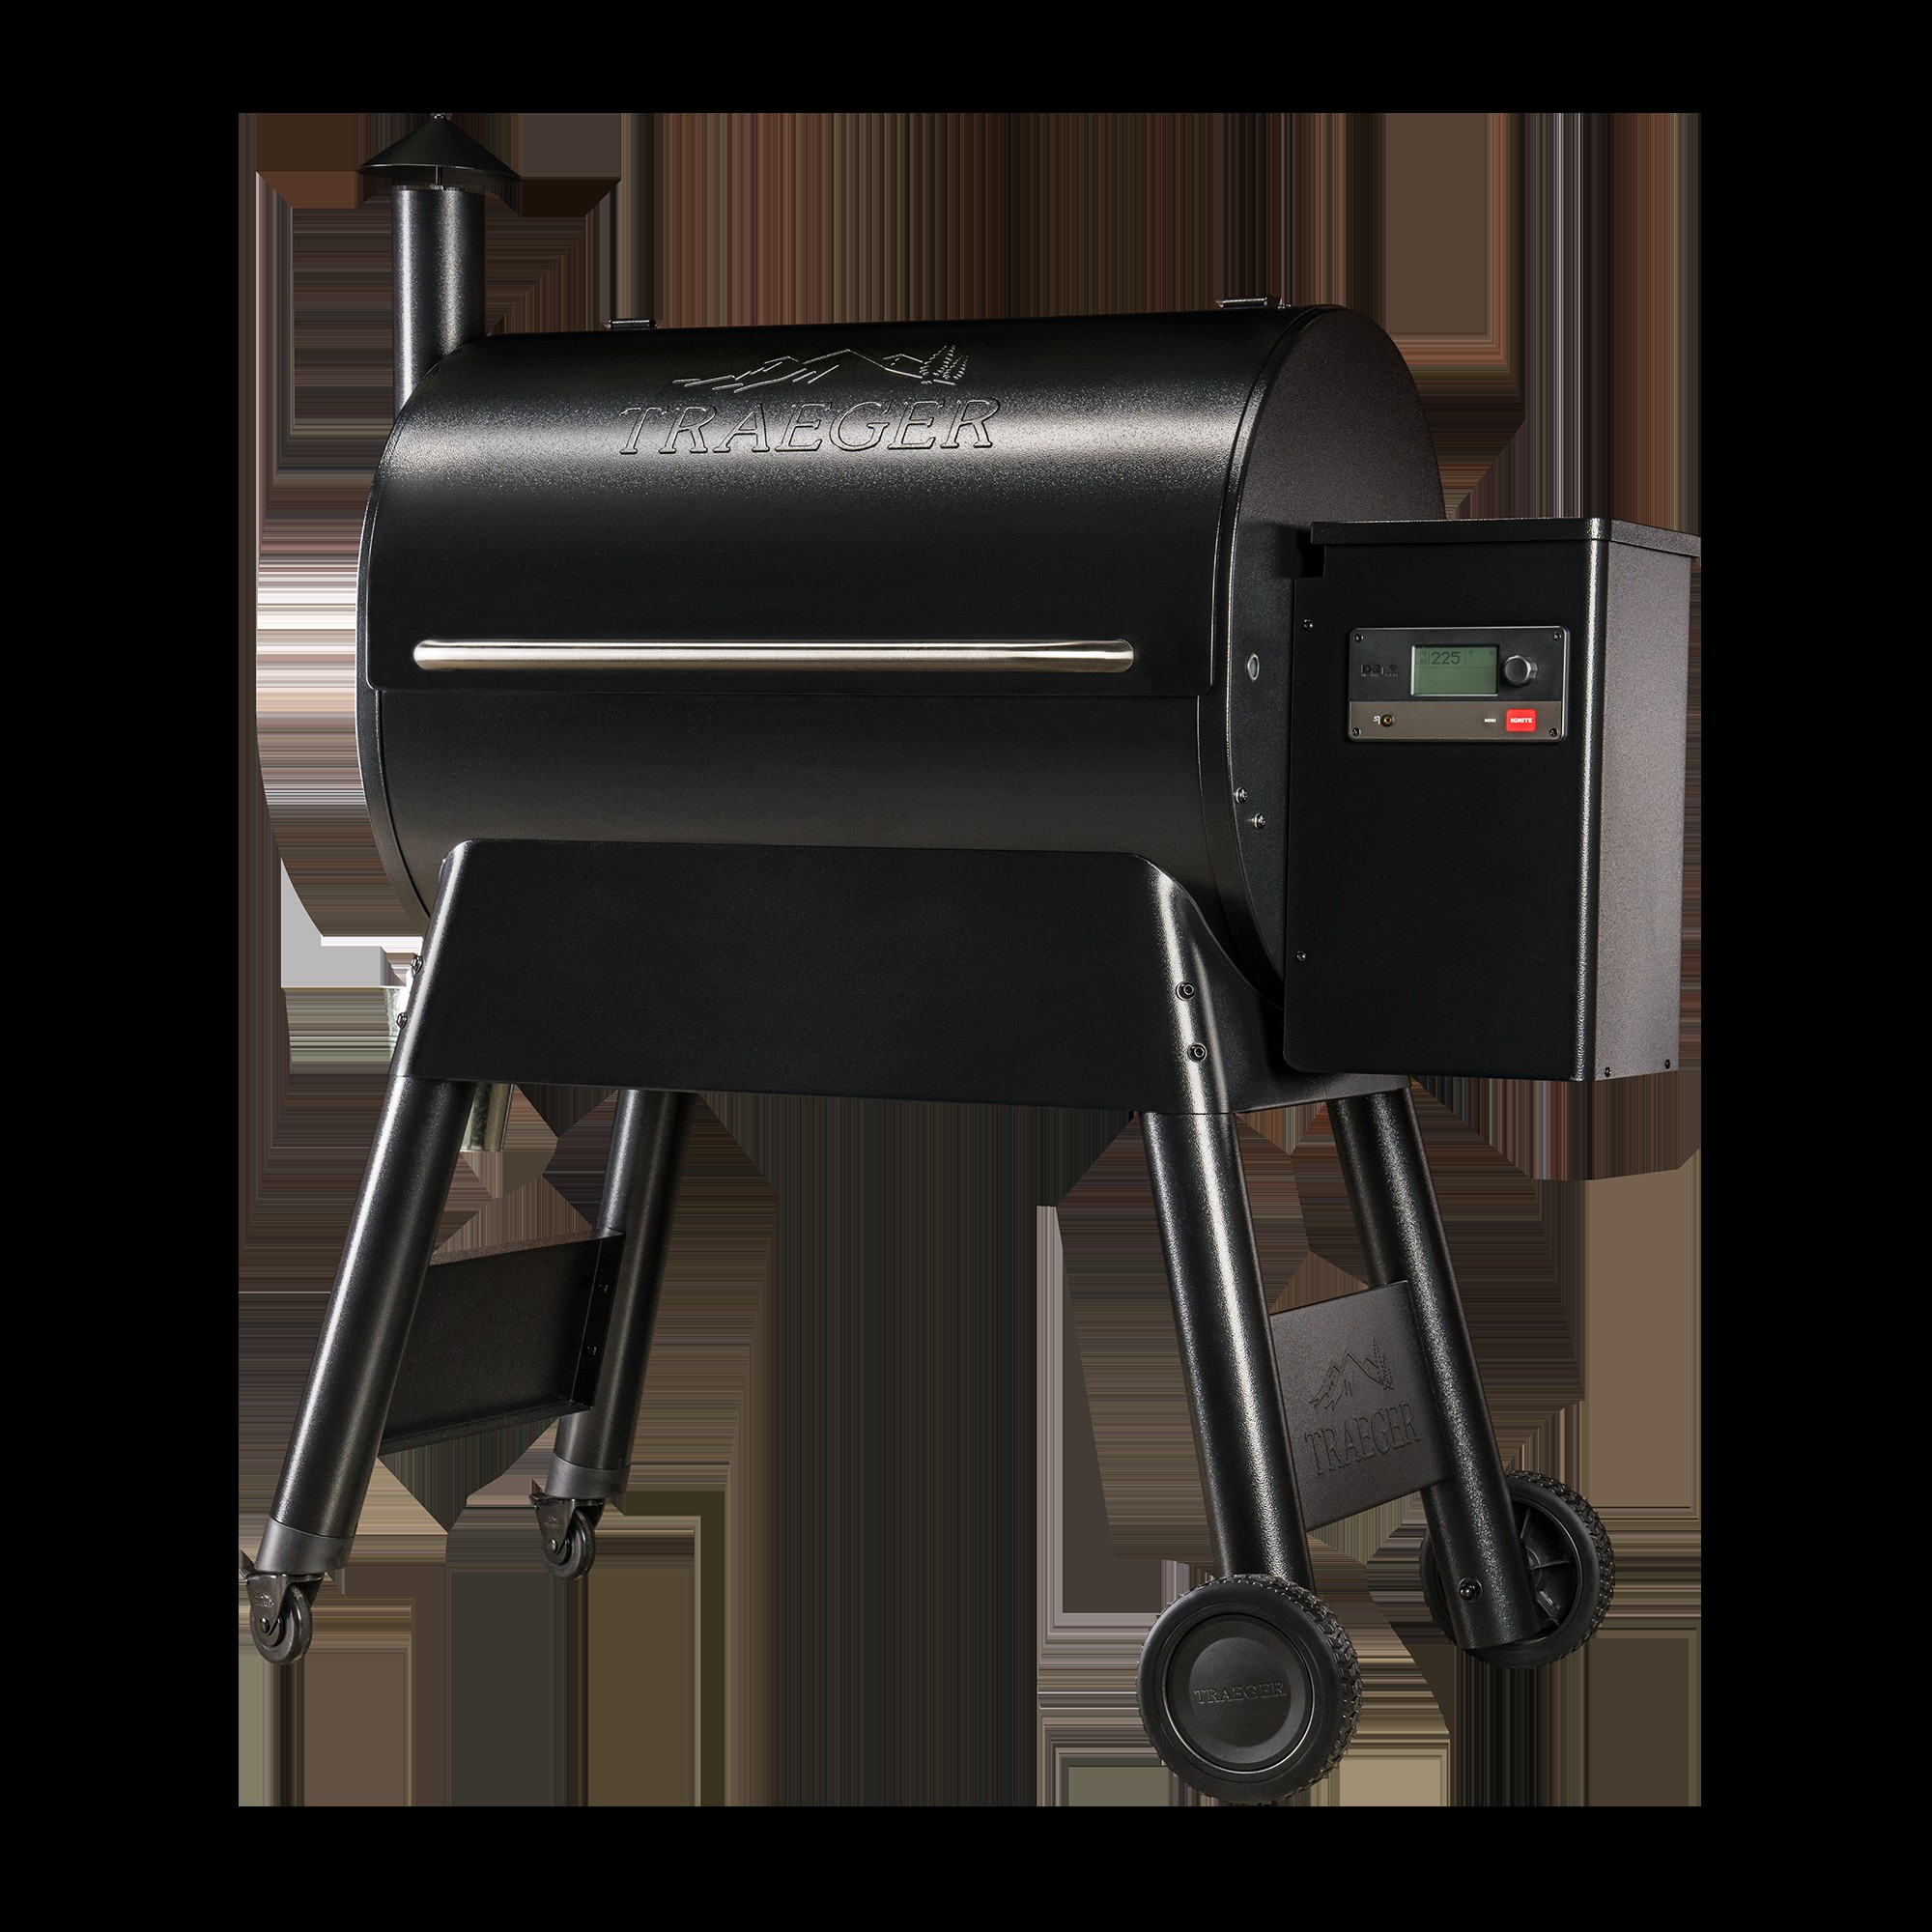 Traeger Grills Electrical Wiring Pro Series 780 Pellet Grill Of Traeger Grills Electrical Wiring